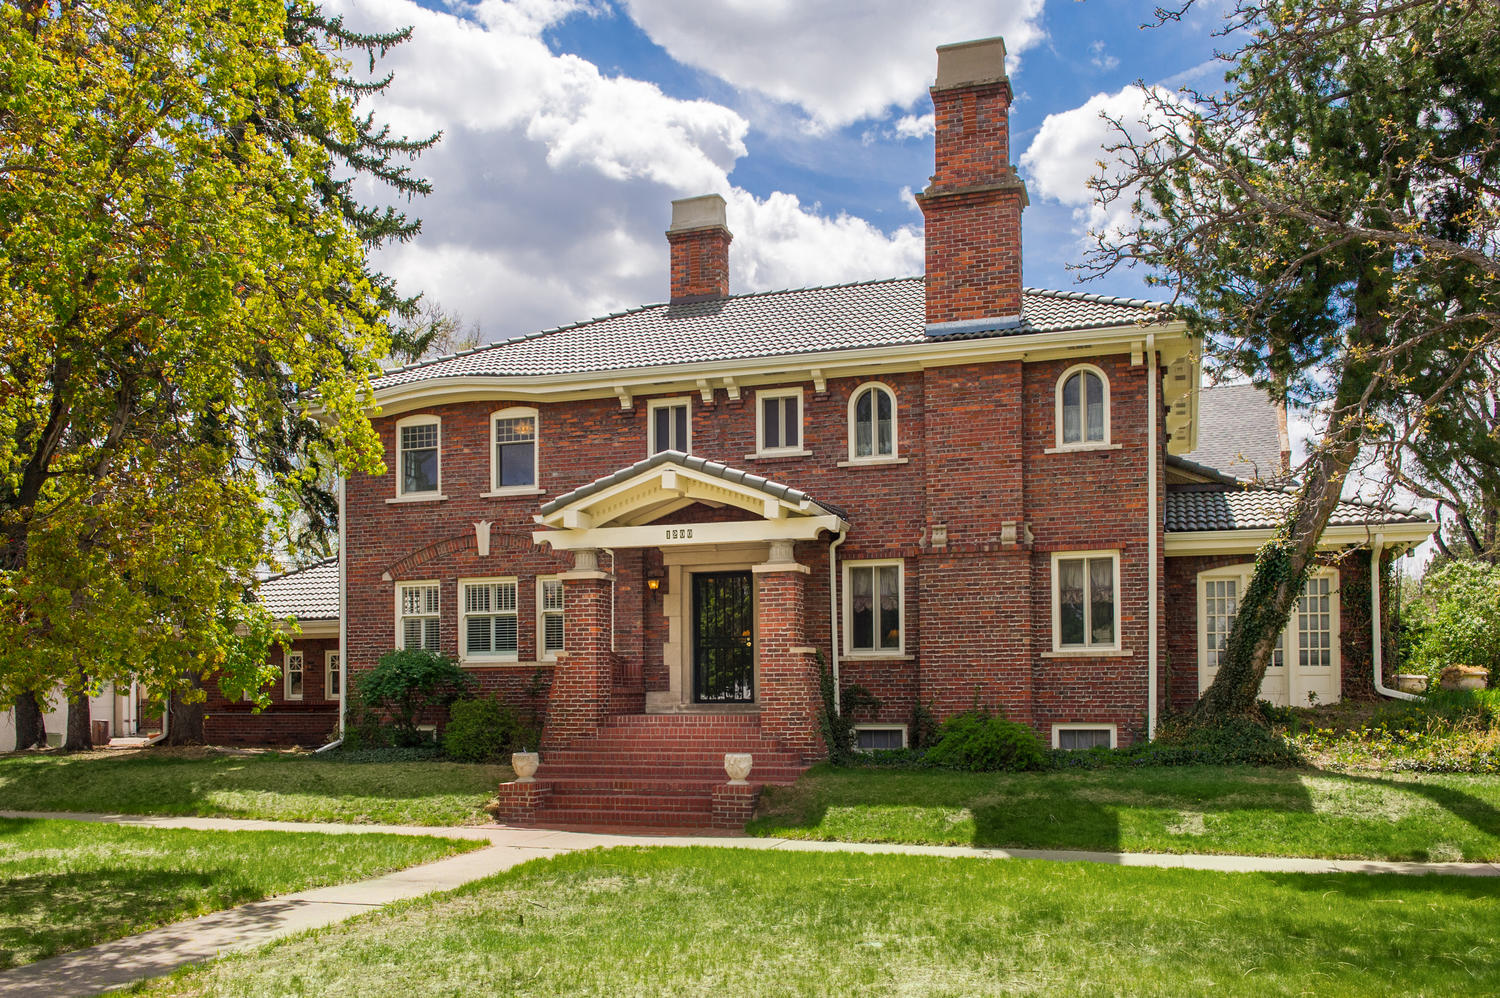 Single Family Home for Sale at Stately Country Club Home 1200 East 3rd Avenue Country Club, Denver, Colorado, 80218 United States